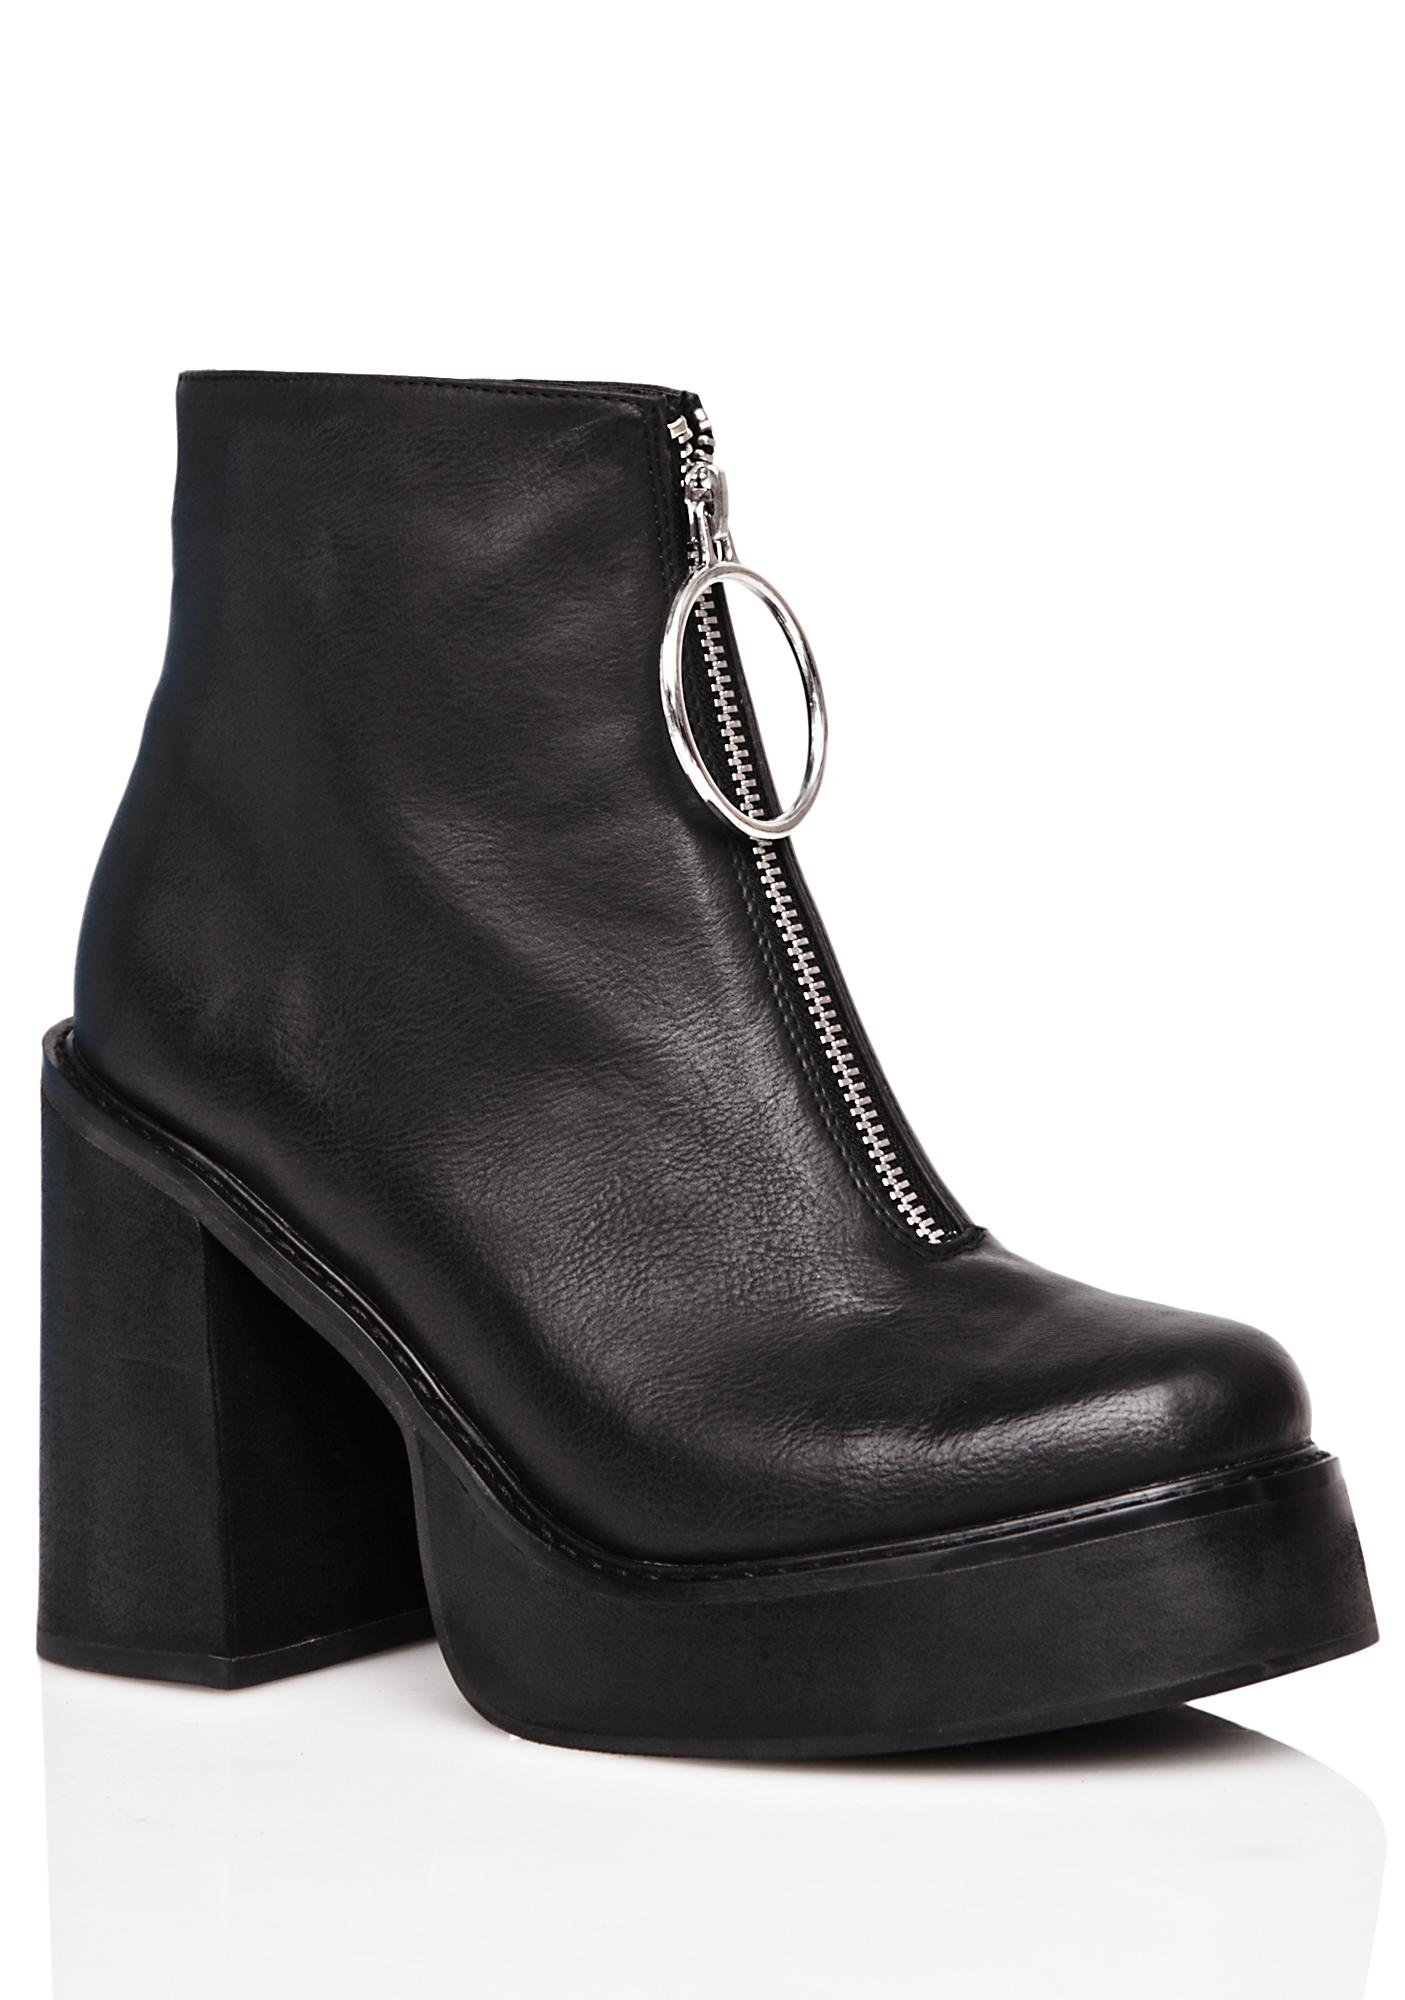 6291b1d344eb Current Mood Franky Platform Boots · Current Mood Franky Platform Boots ...